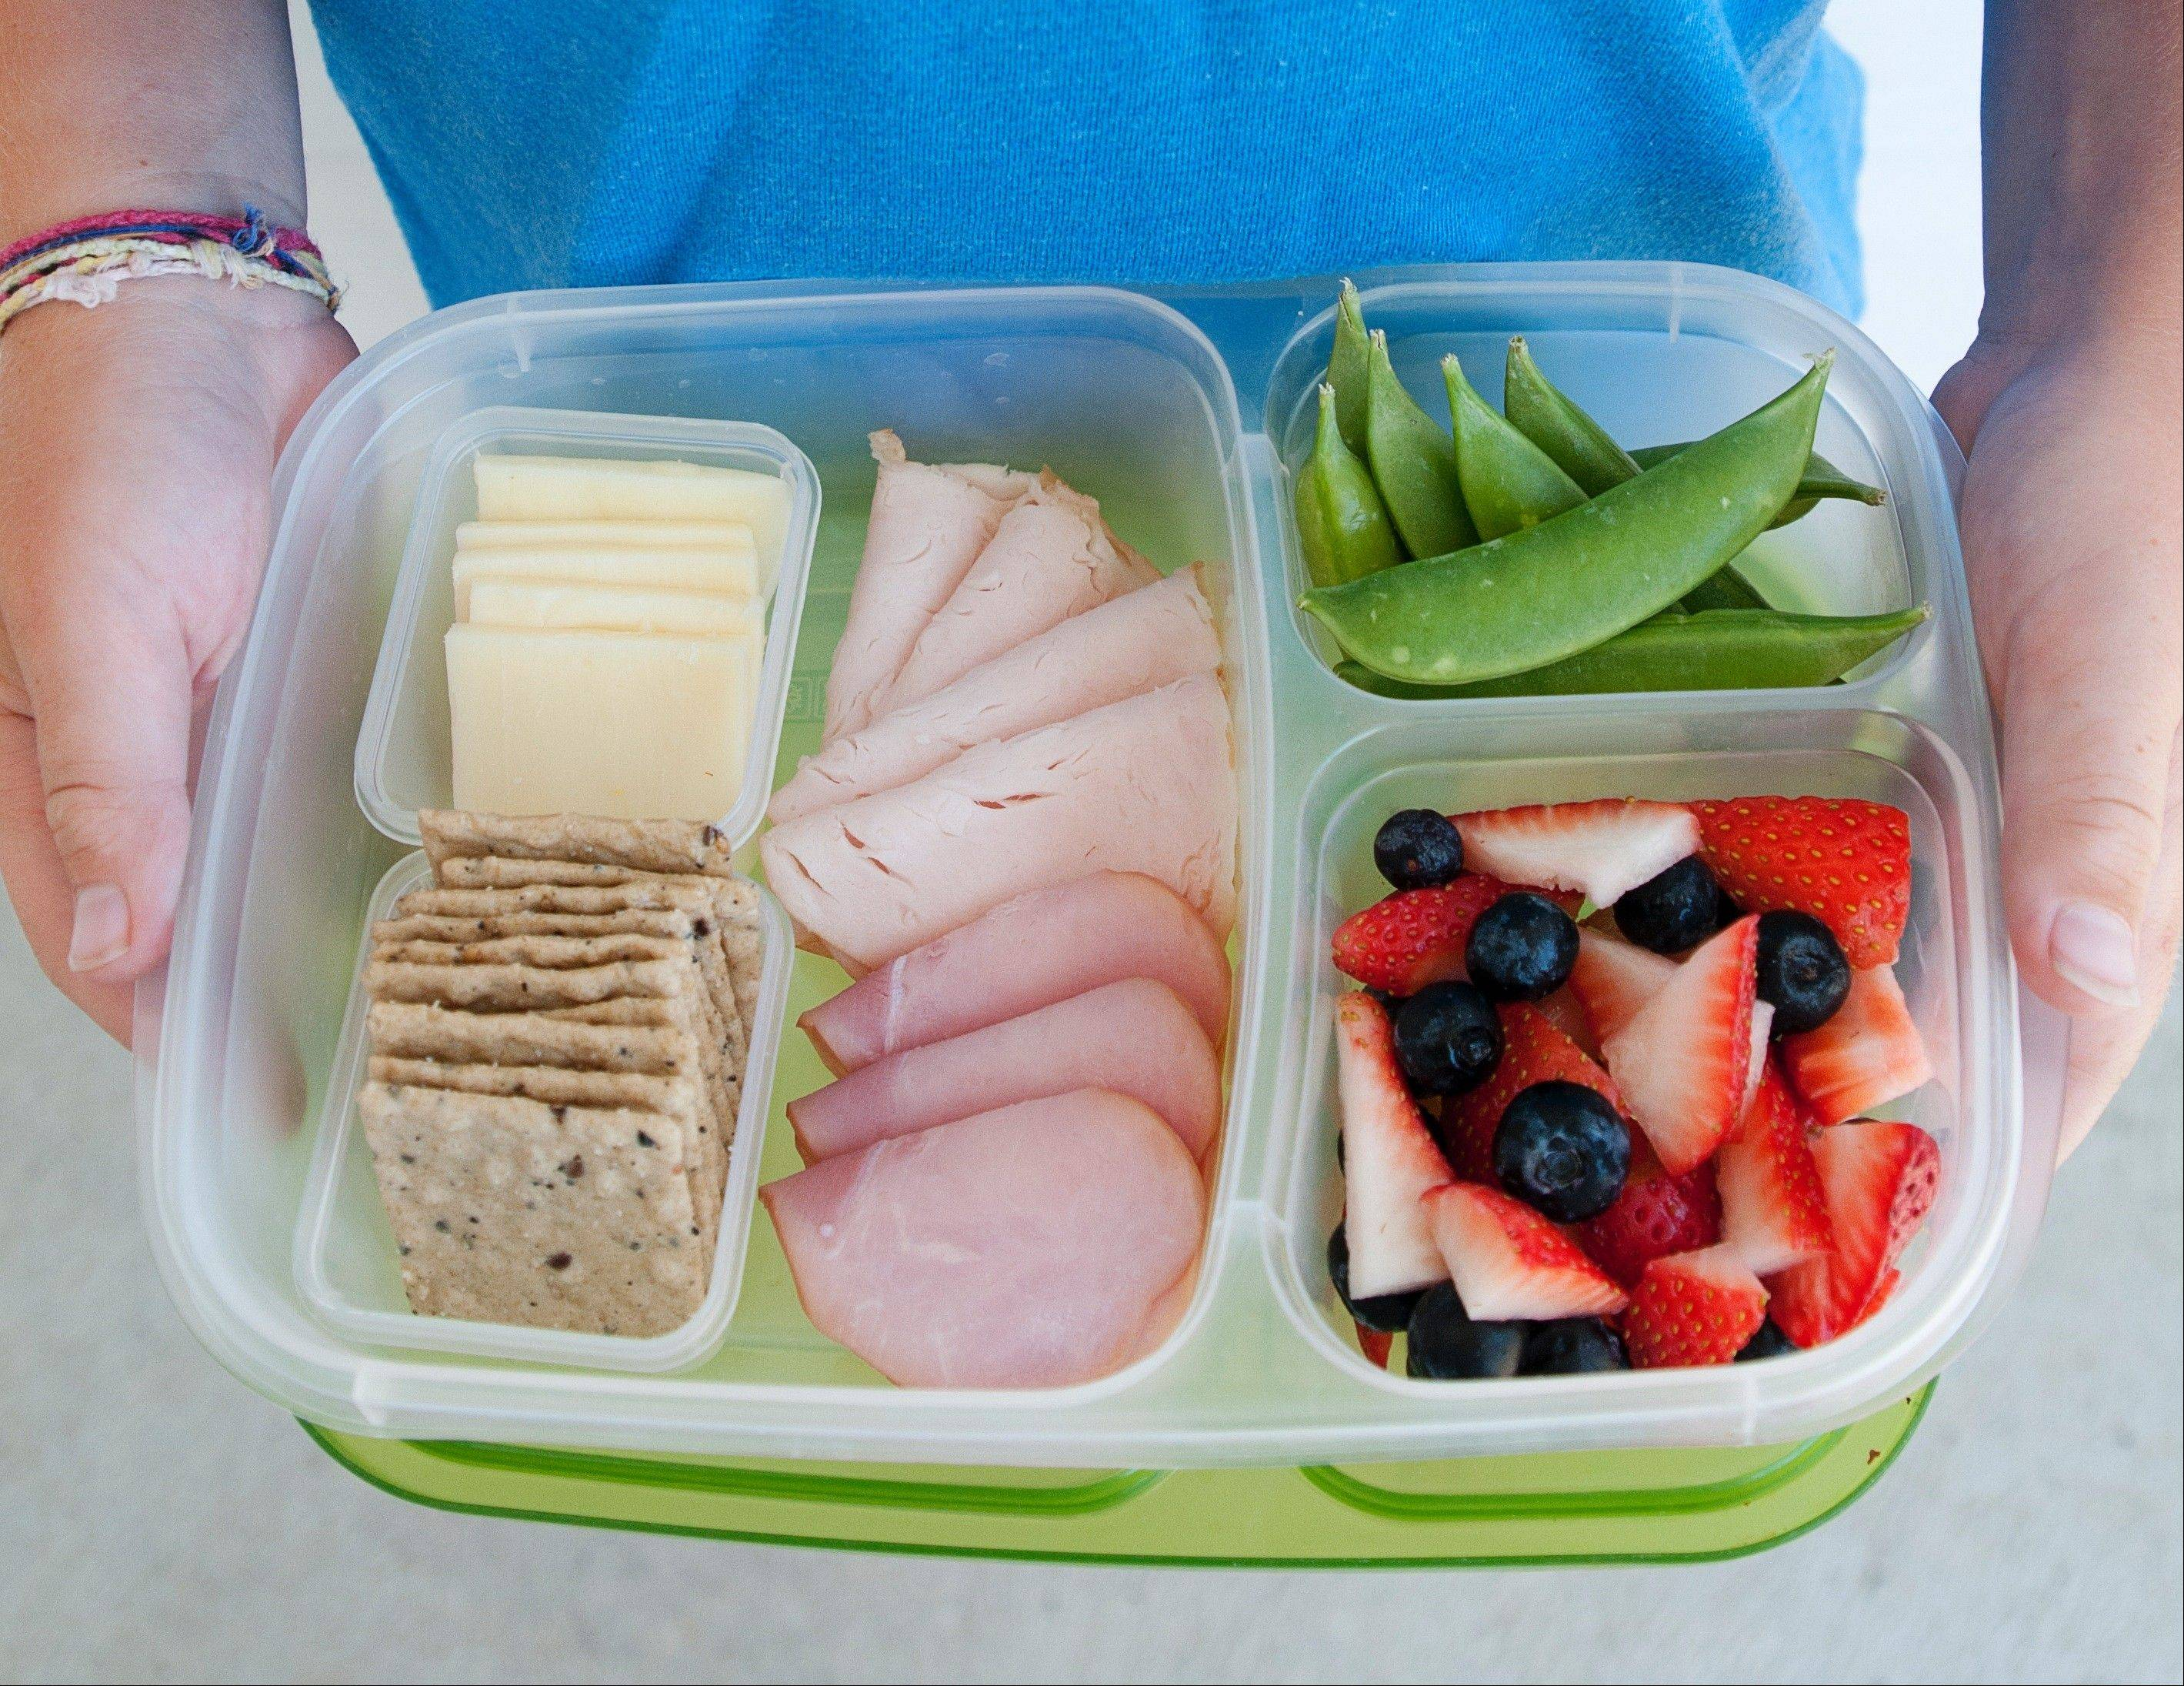 By using a separated container, it's easy to put together a Lunchable-style lunch with mom-approved foods.